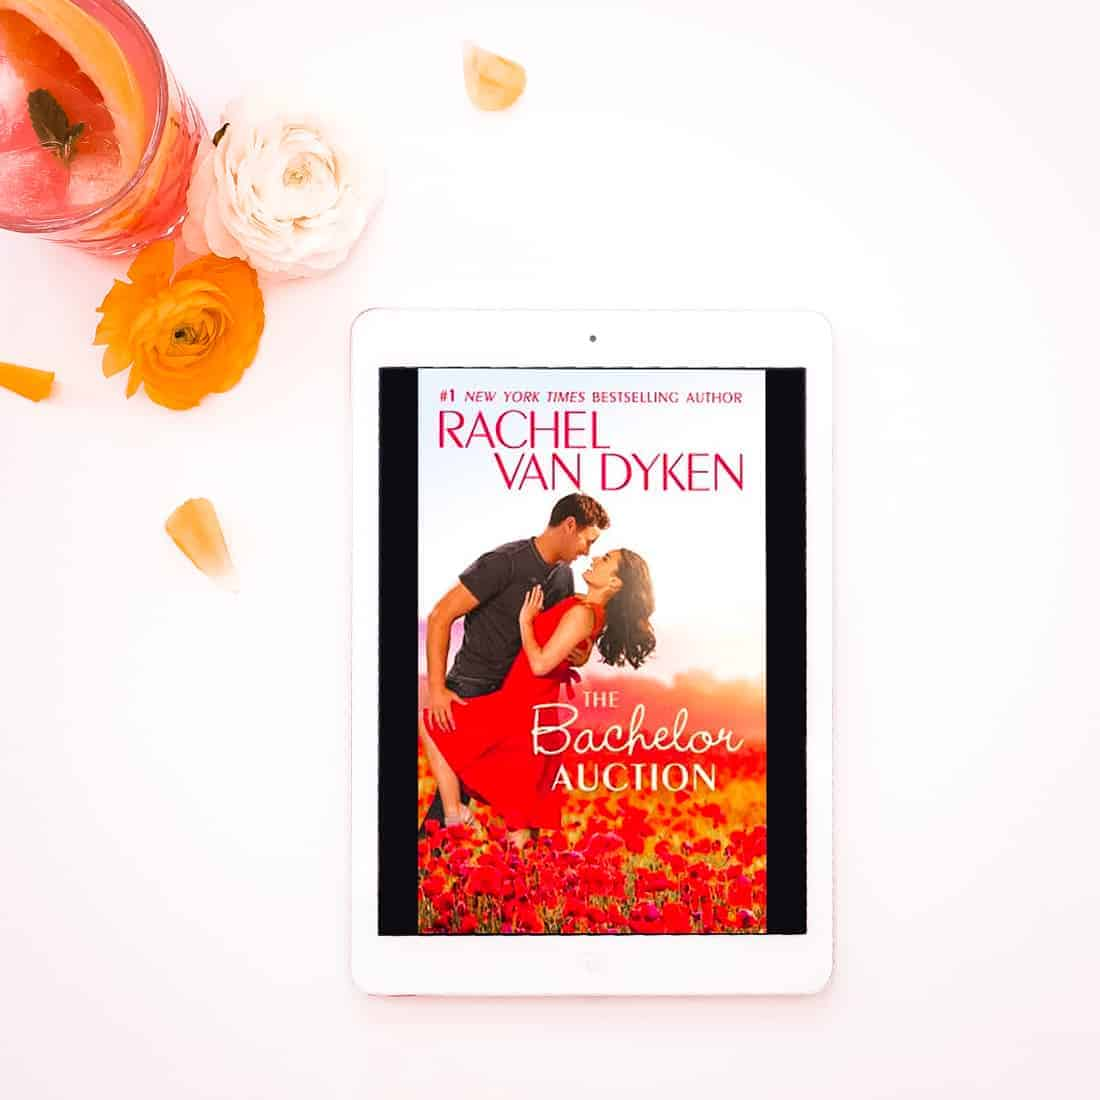 The Bachelor Auction by Rachel Van Dyken is a very sweet, but very loose, interpretation of the classic tale of Cinderella with a fun and modern spin.